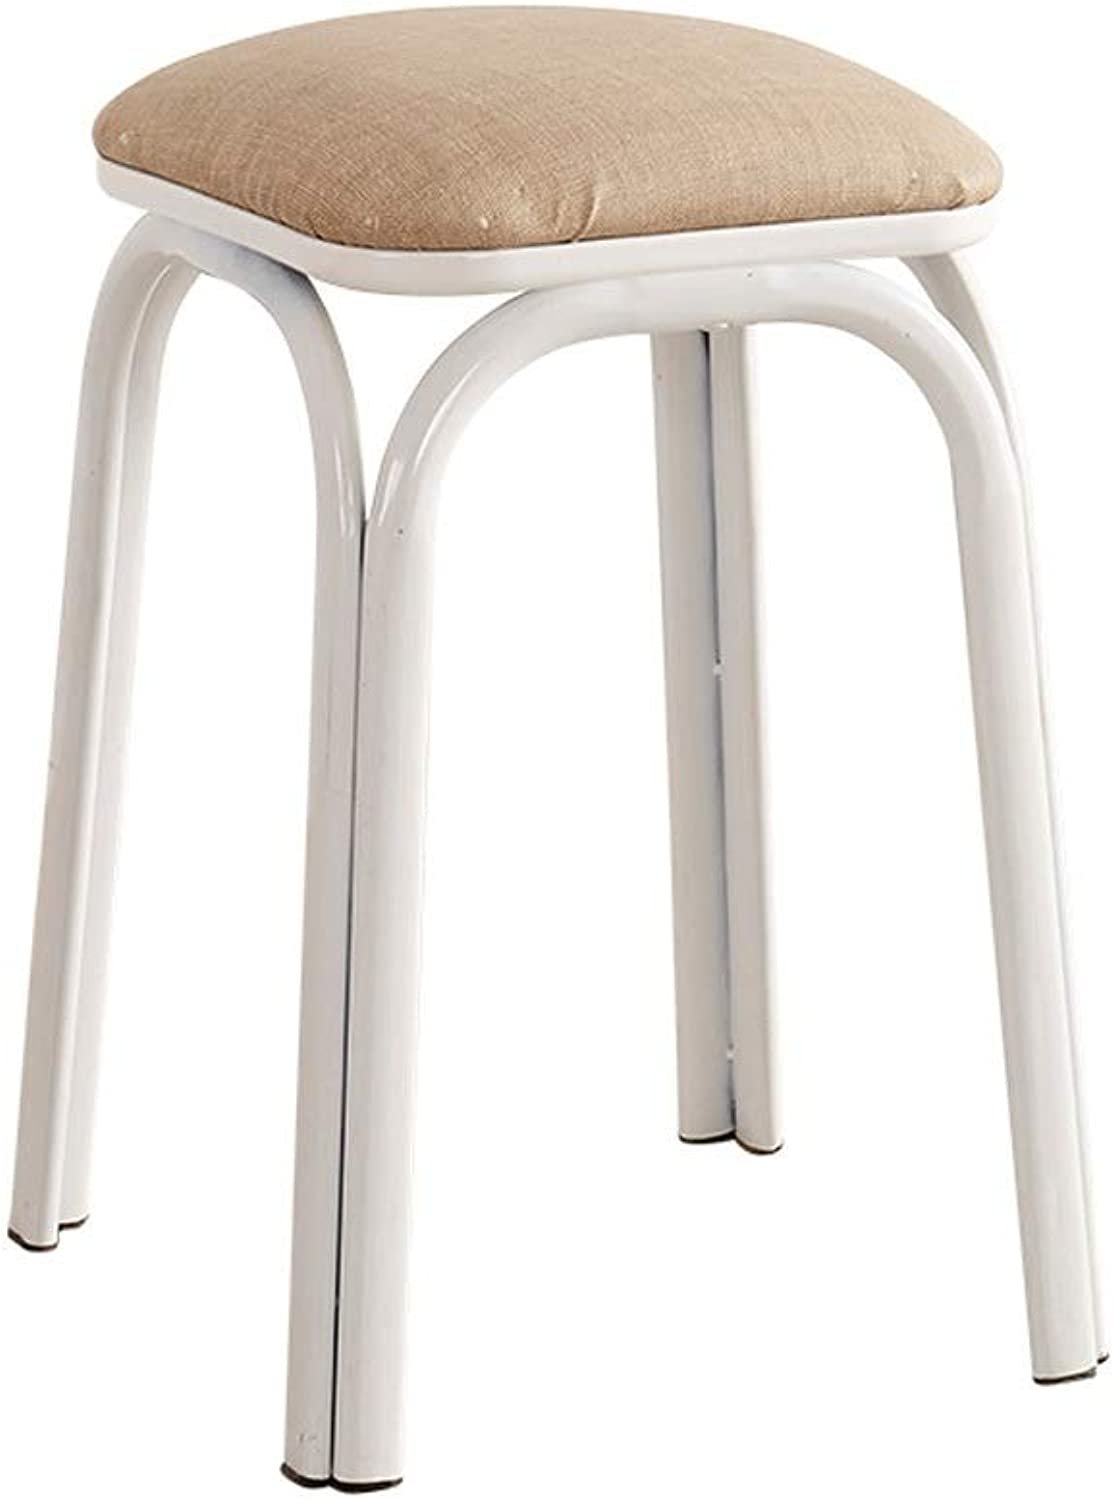 Creative Small Stool, Simple Leisure Household Stool Metal Frame High Stool Dressing Stool Stackable Stool White Black Grey, for Kitchen, Restaurant, Cafe, Bar (Size  26  26  46cm) (color   D)